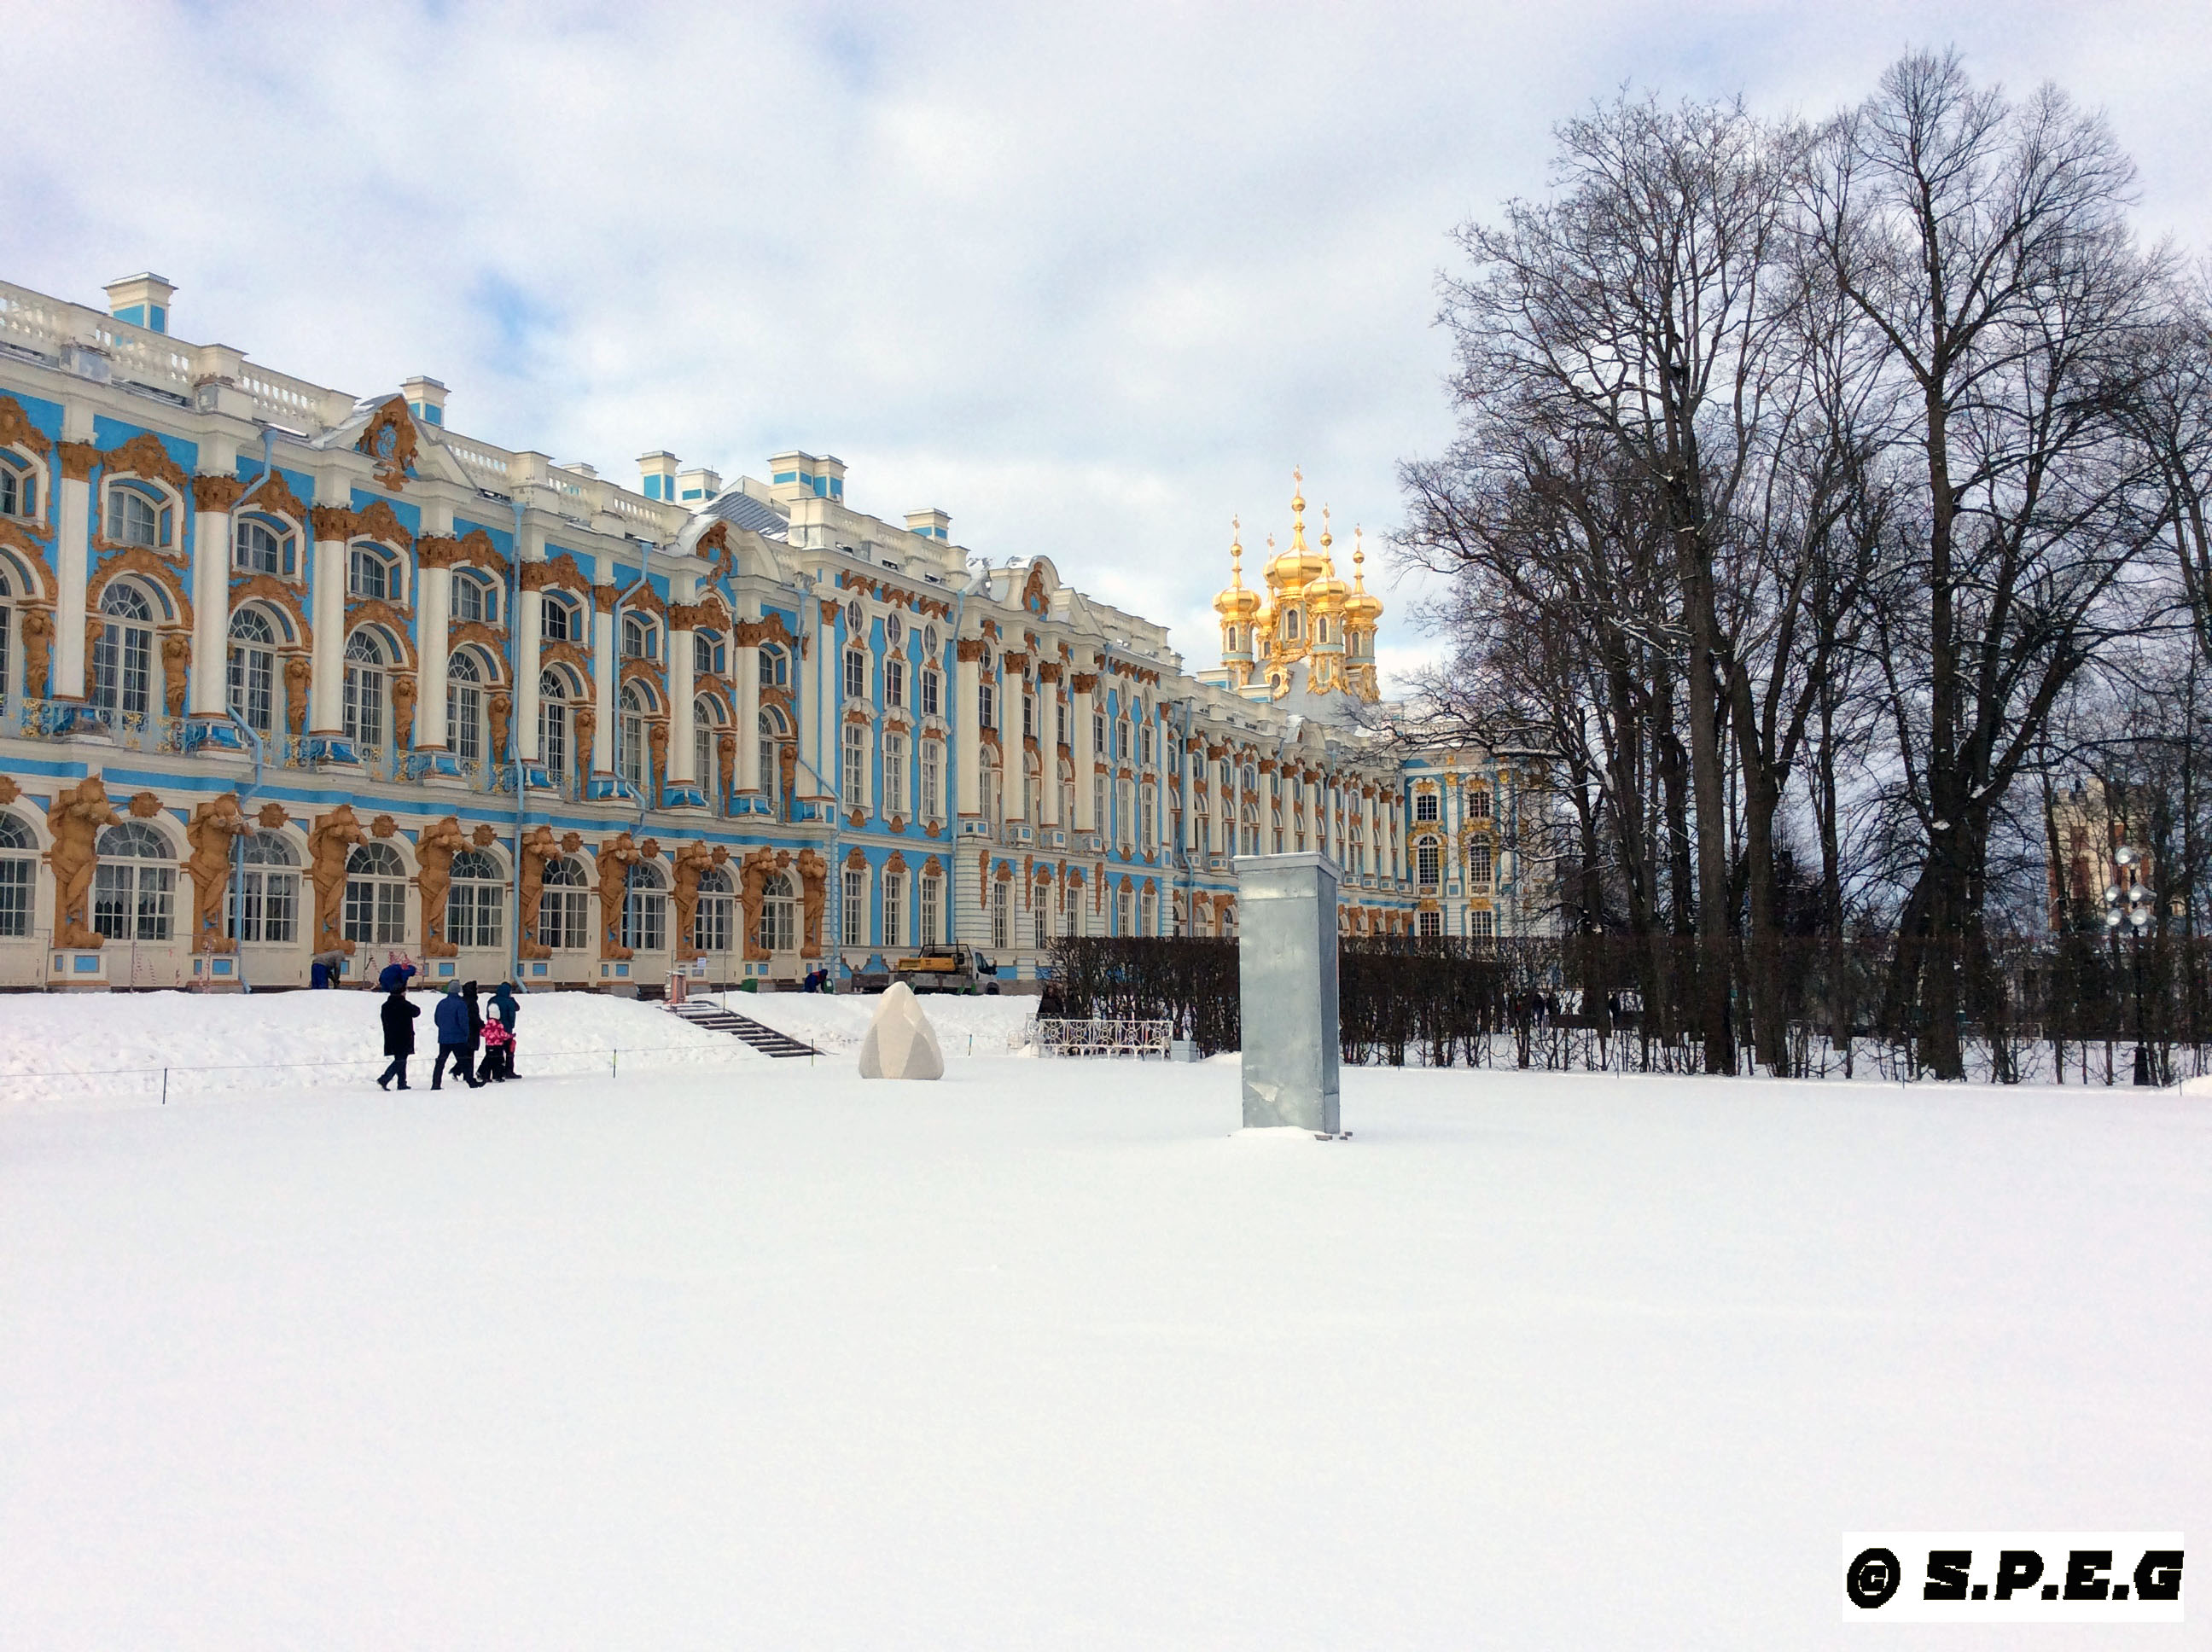 Catherine Palace in Tsarskoye Selo during Winter.